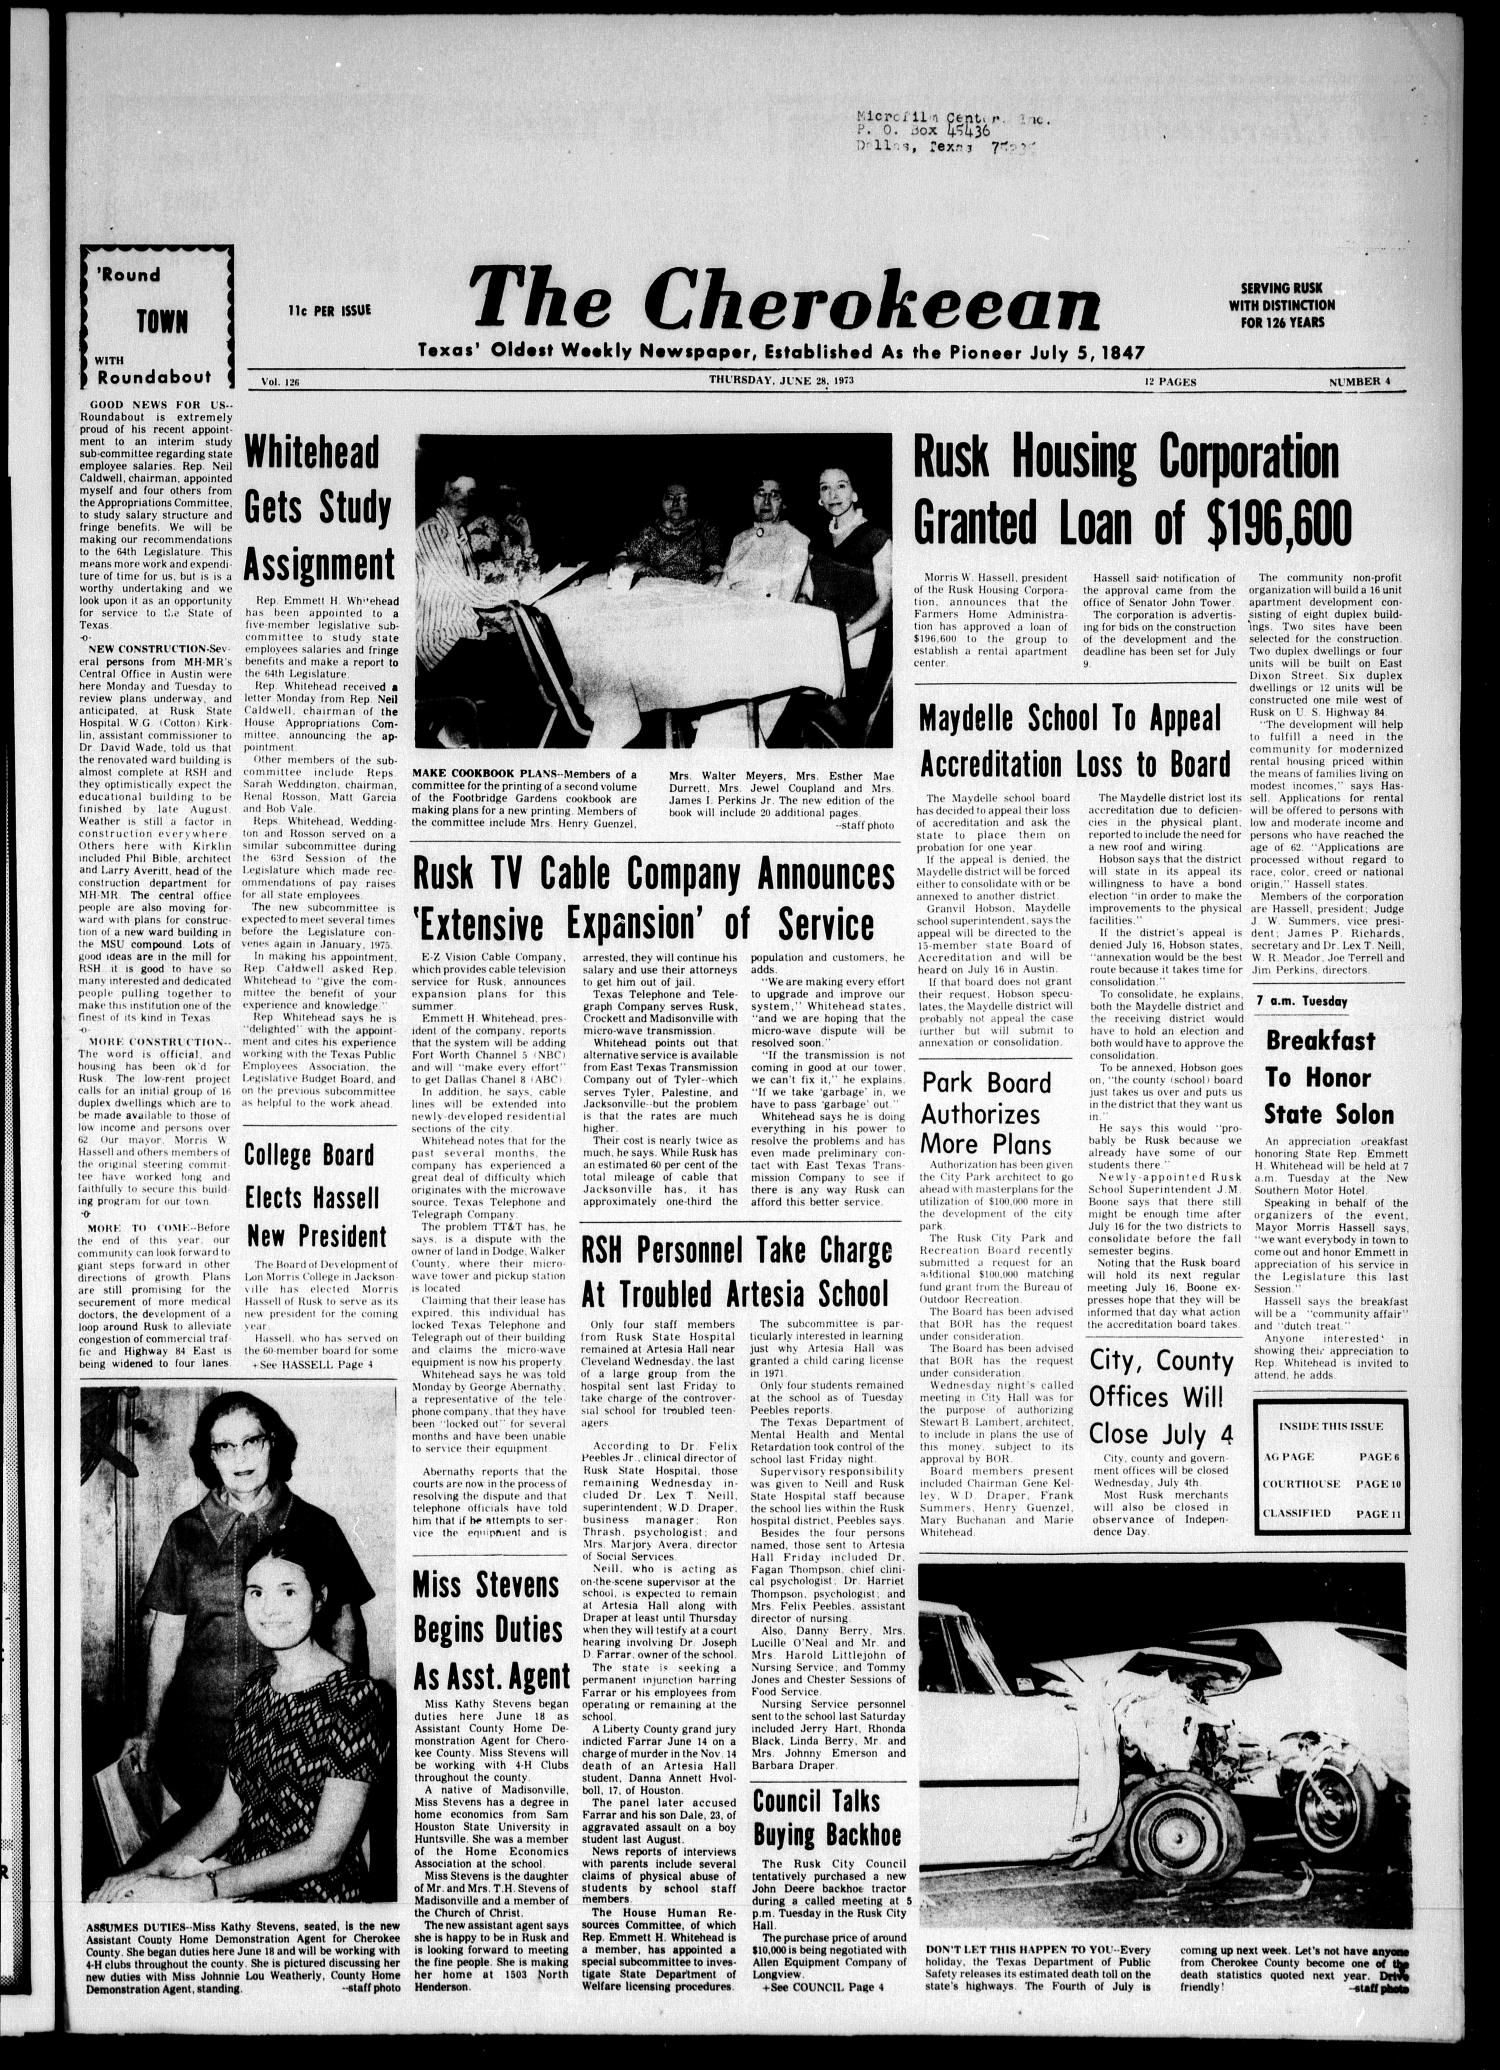 The Cherokeean. (Rusk, Tex.), Vol. 126, No. 4, Ed. 1 Thursday, June 28, 1973                                                                                                      [Sequence #]: 1 of 12